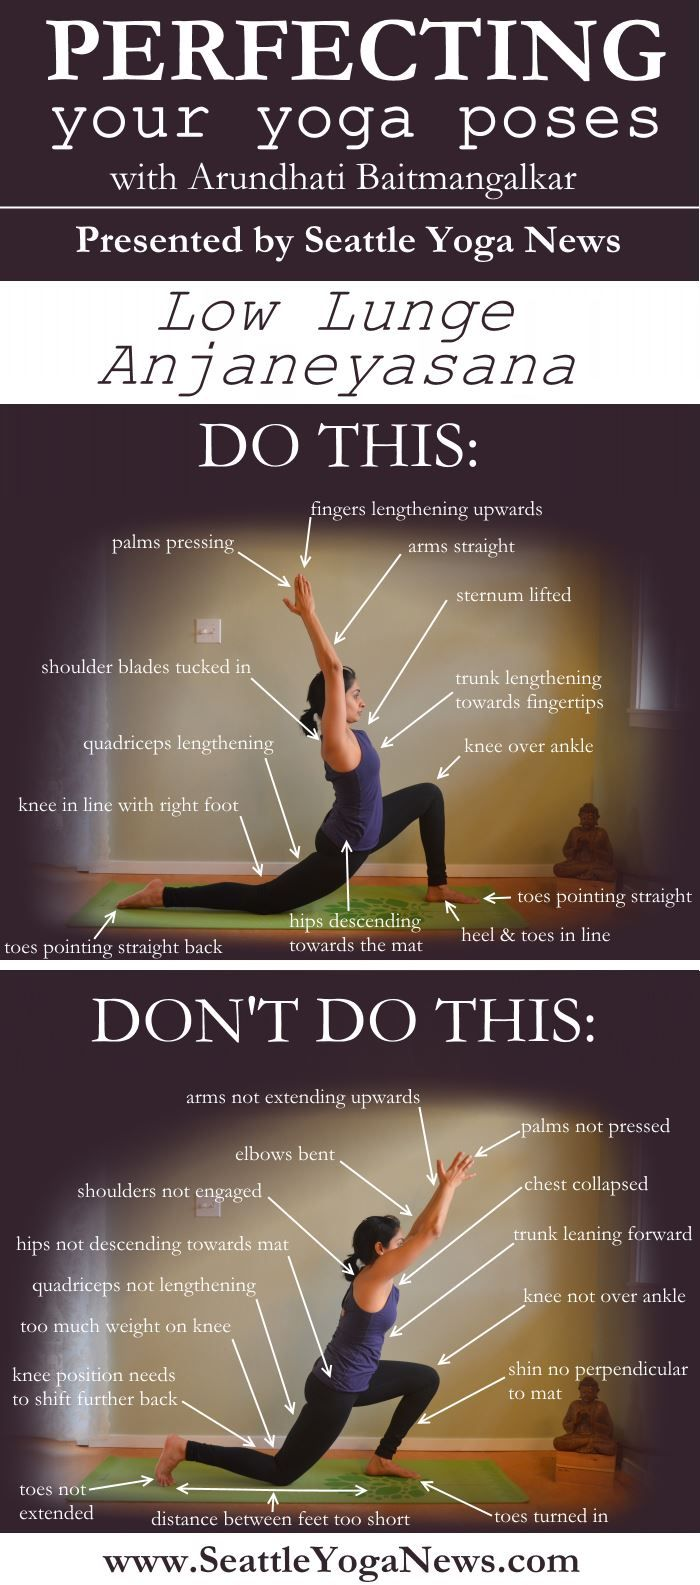 """Here's part 2 of our """"Do This Not That"""" series - Low Lunge yoga pose. Ready to perfect this asana? Tags: yoga, yogi, infographic, yoga pose, yoga poses, asana, asanas, low lunge, low lunge yoga pose"""